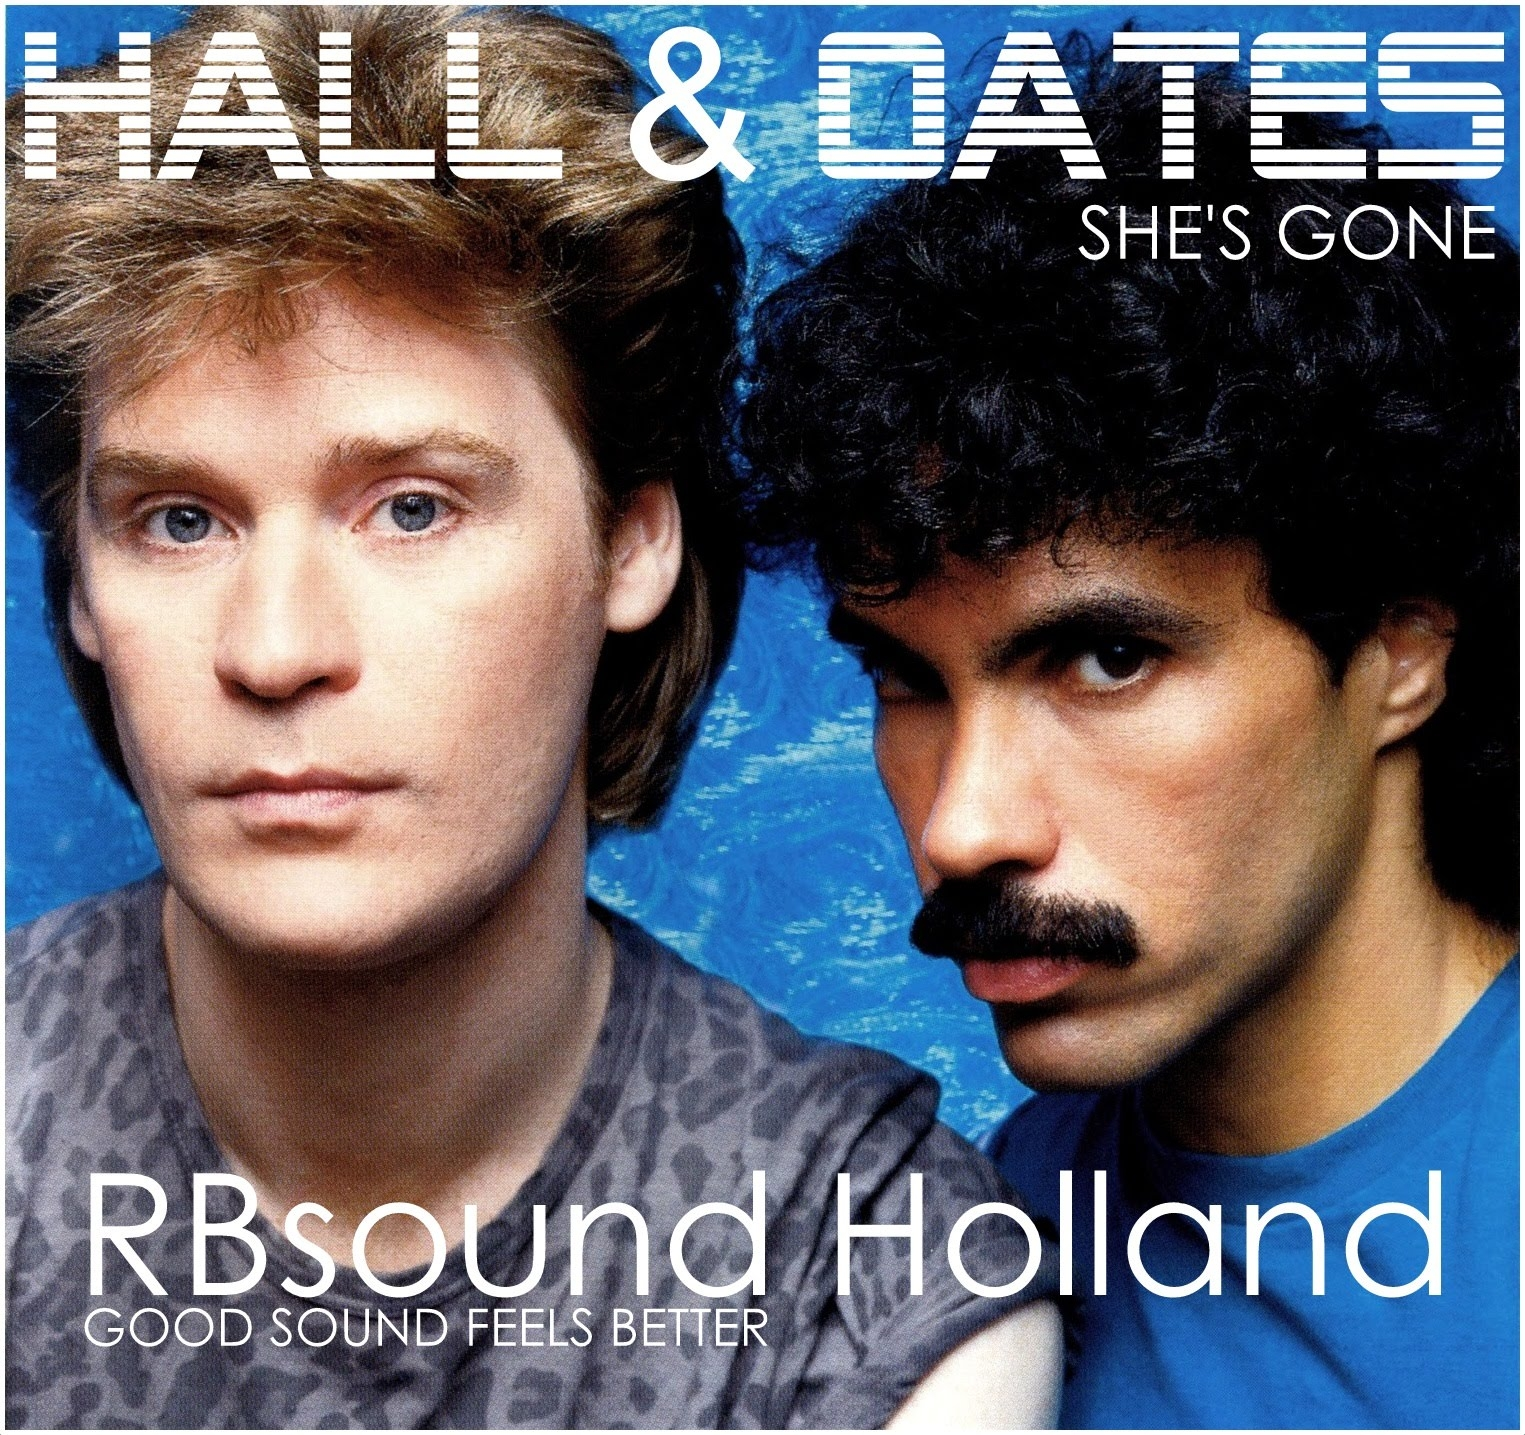 ARTISTS OF THE WEEK: Daryl Hall and John Oates